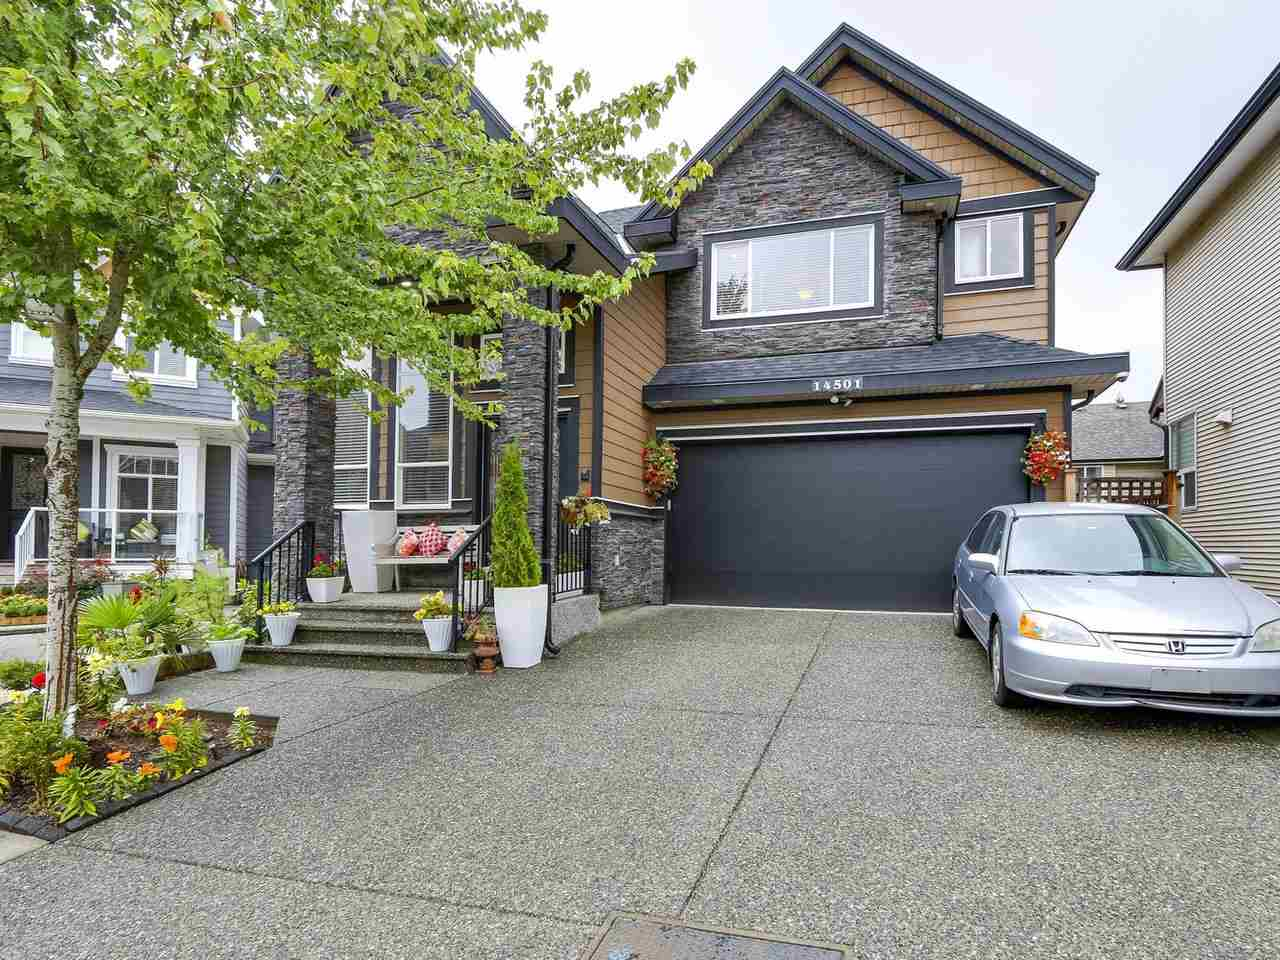 Main Photo: 14501 59A AVENUE in Surrey: Sullivan Station House for sale : MLS® # R2207599